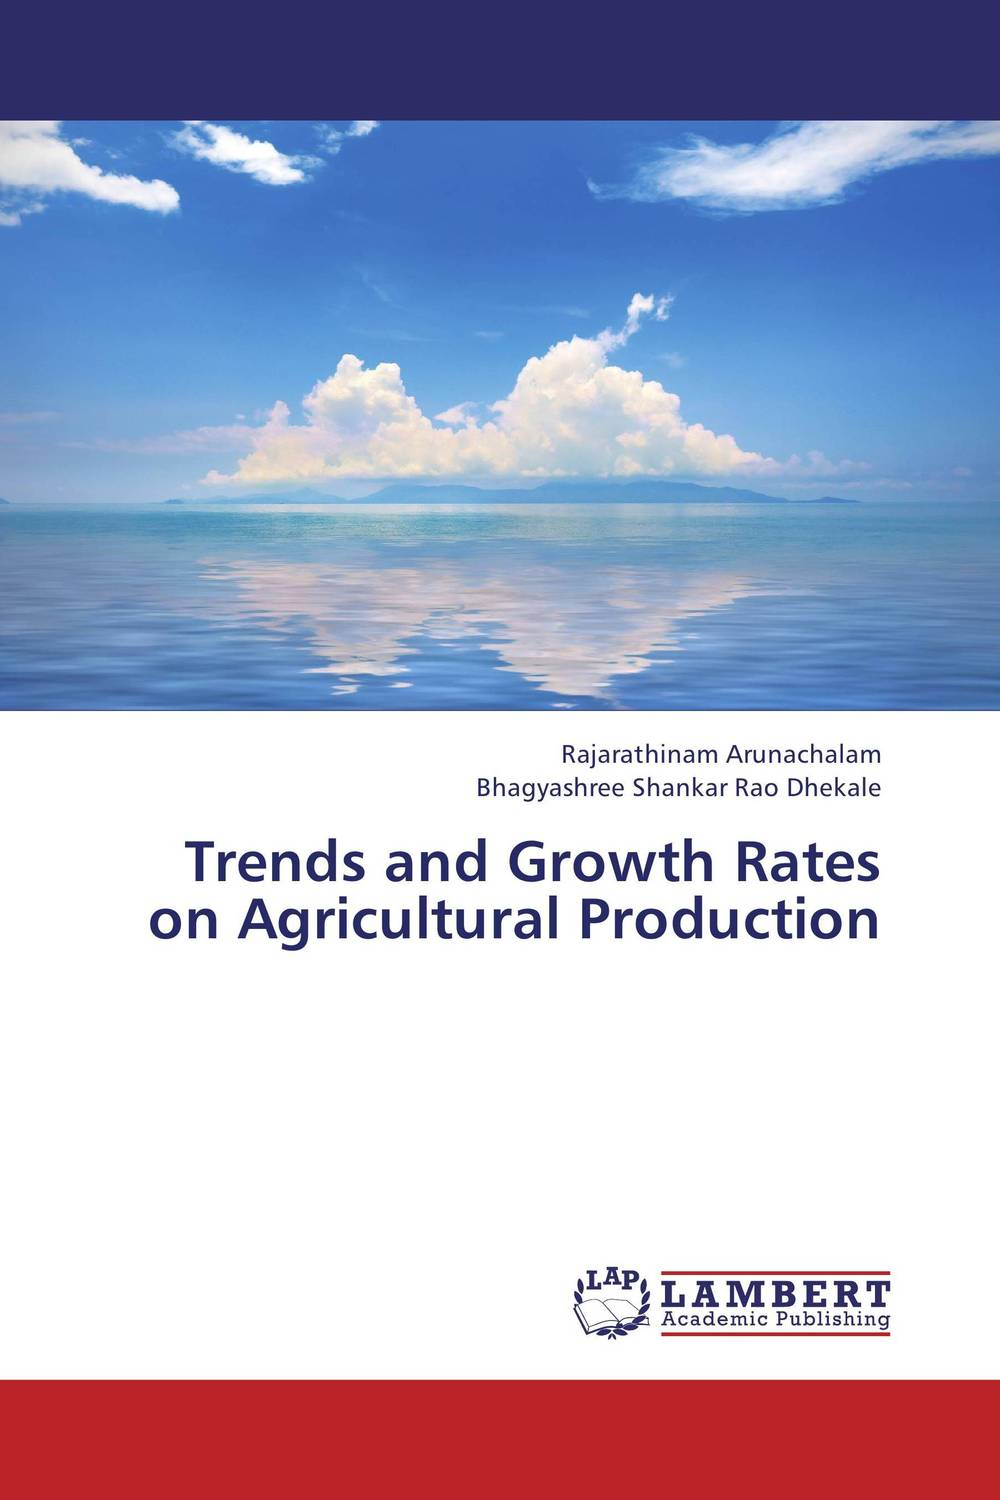 Trends and Growth Rates on Agricultural Production cold storage accessibility and agricultural production by smallholders